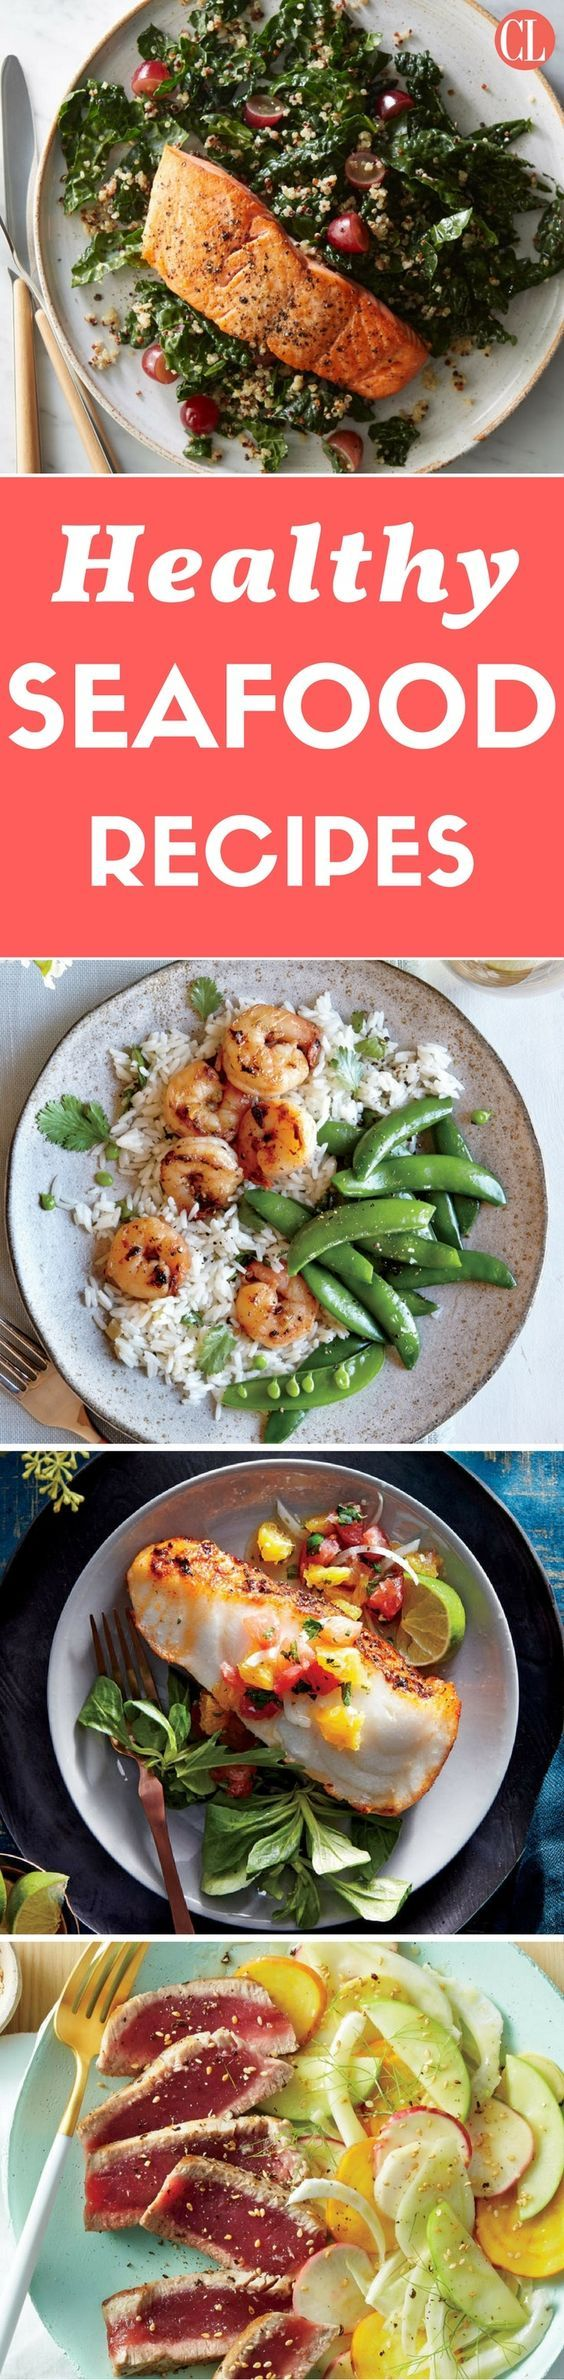 These lean protein sources deliver heart- and brain-healthy benefits so you can stick to a healthy diet. Find your way to optimum heart health with these succulent seafood recipes. Our collection of seafood recipes offers a variety of preparation and cooking options to optimize your fish and shellfish based meals.   Cooking Light